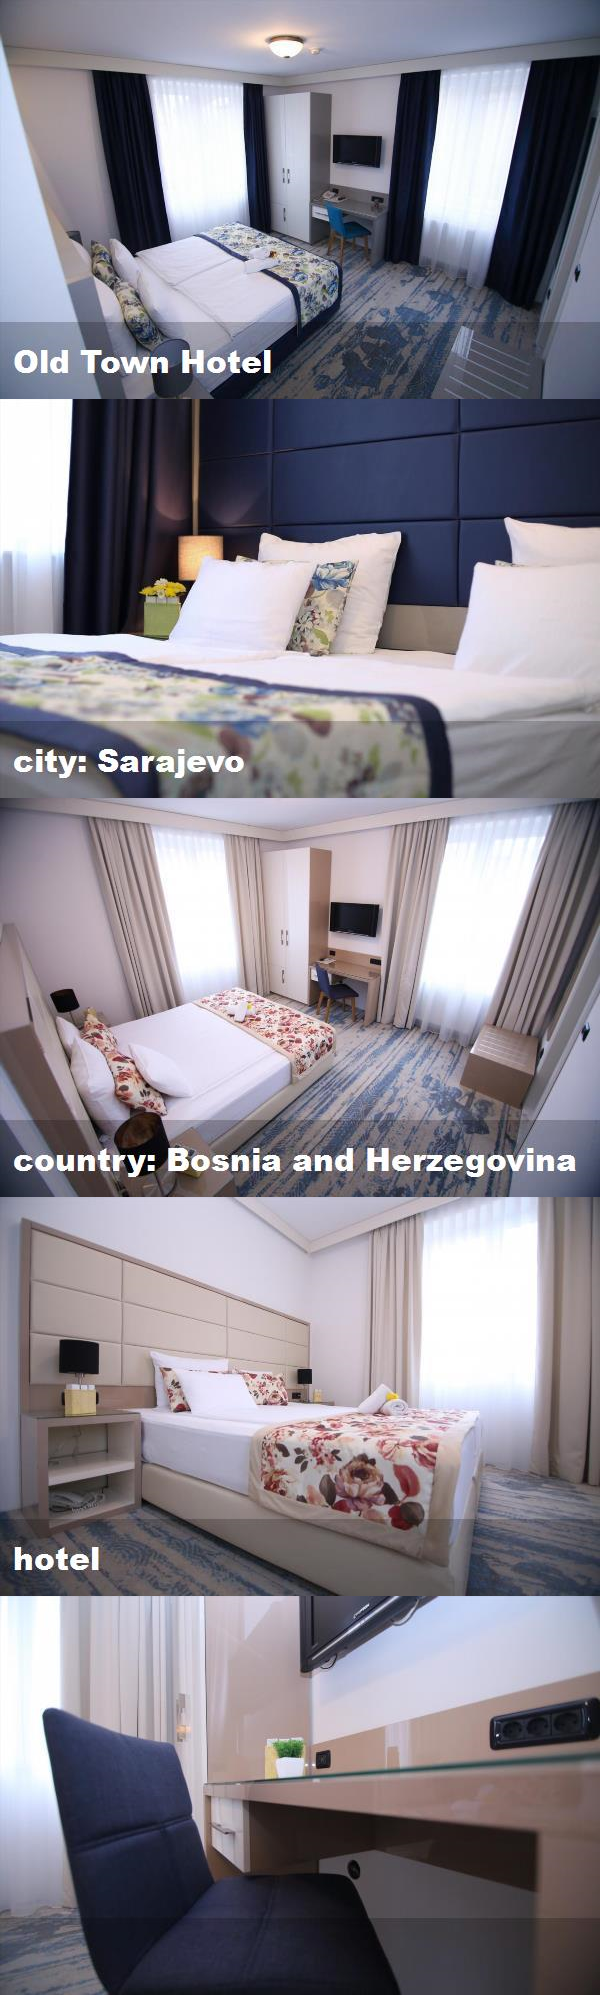 Old Town Hotel City Sarajevo Country Bosnia And Herzegovina Hotel Old Town Hotels Old Town Hotel